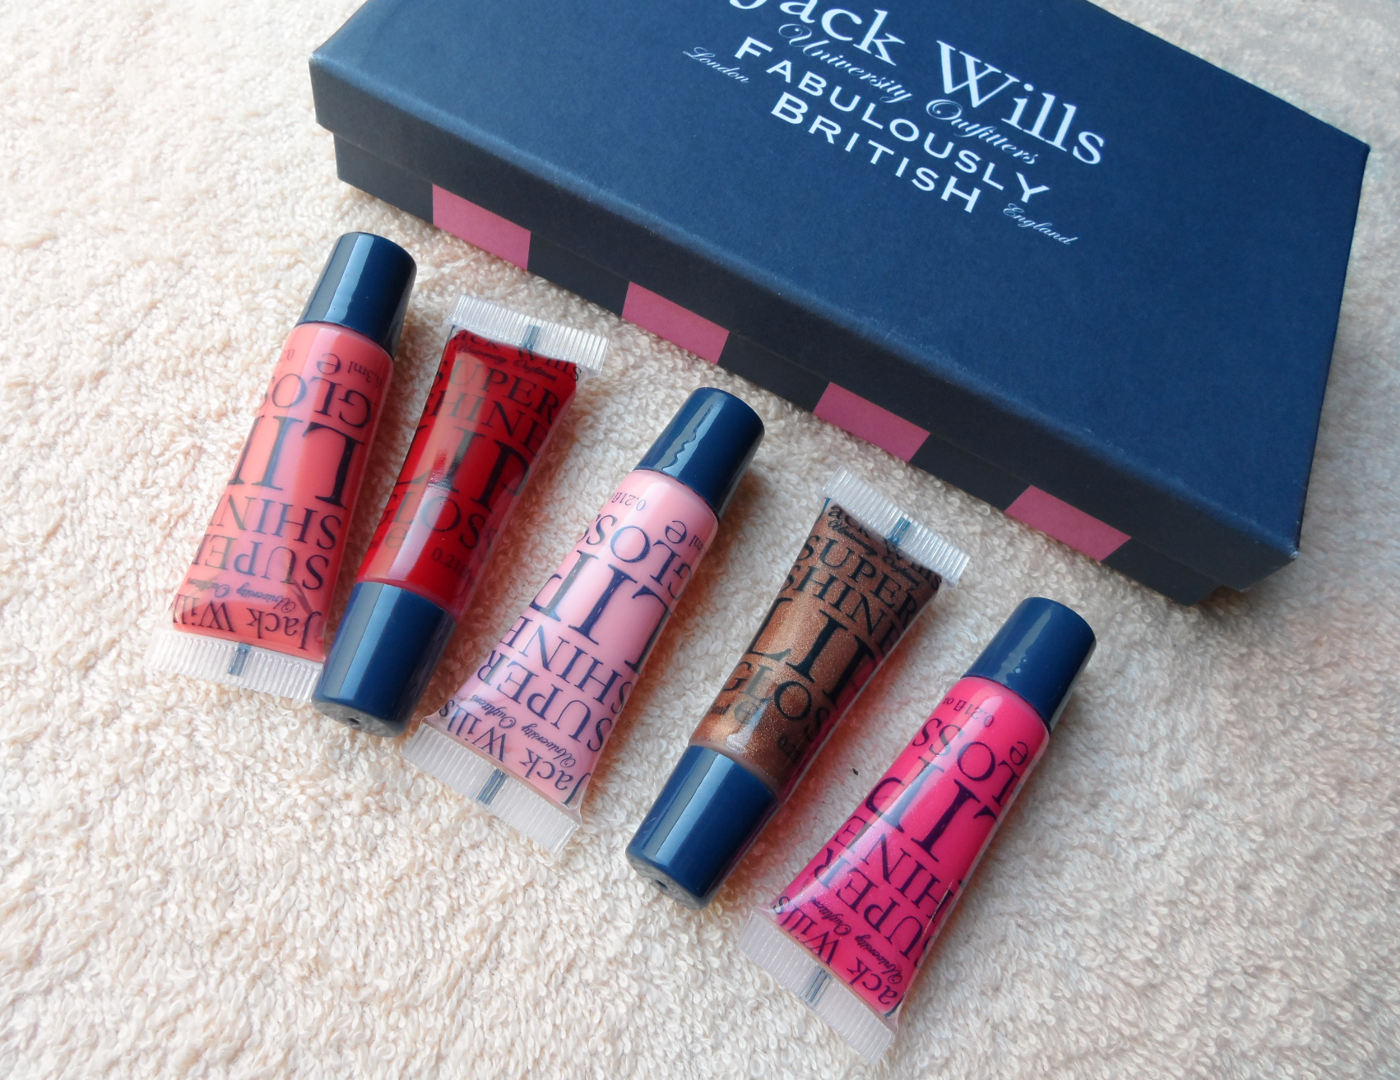 fabulously british lip gloss set review